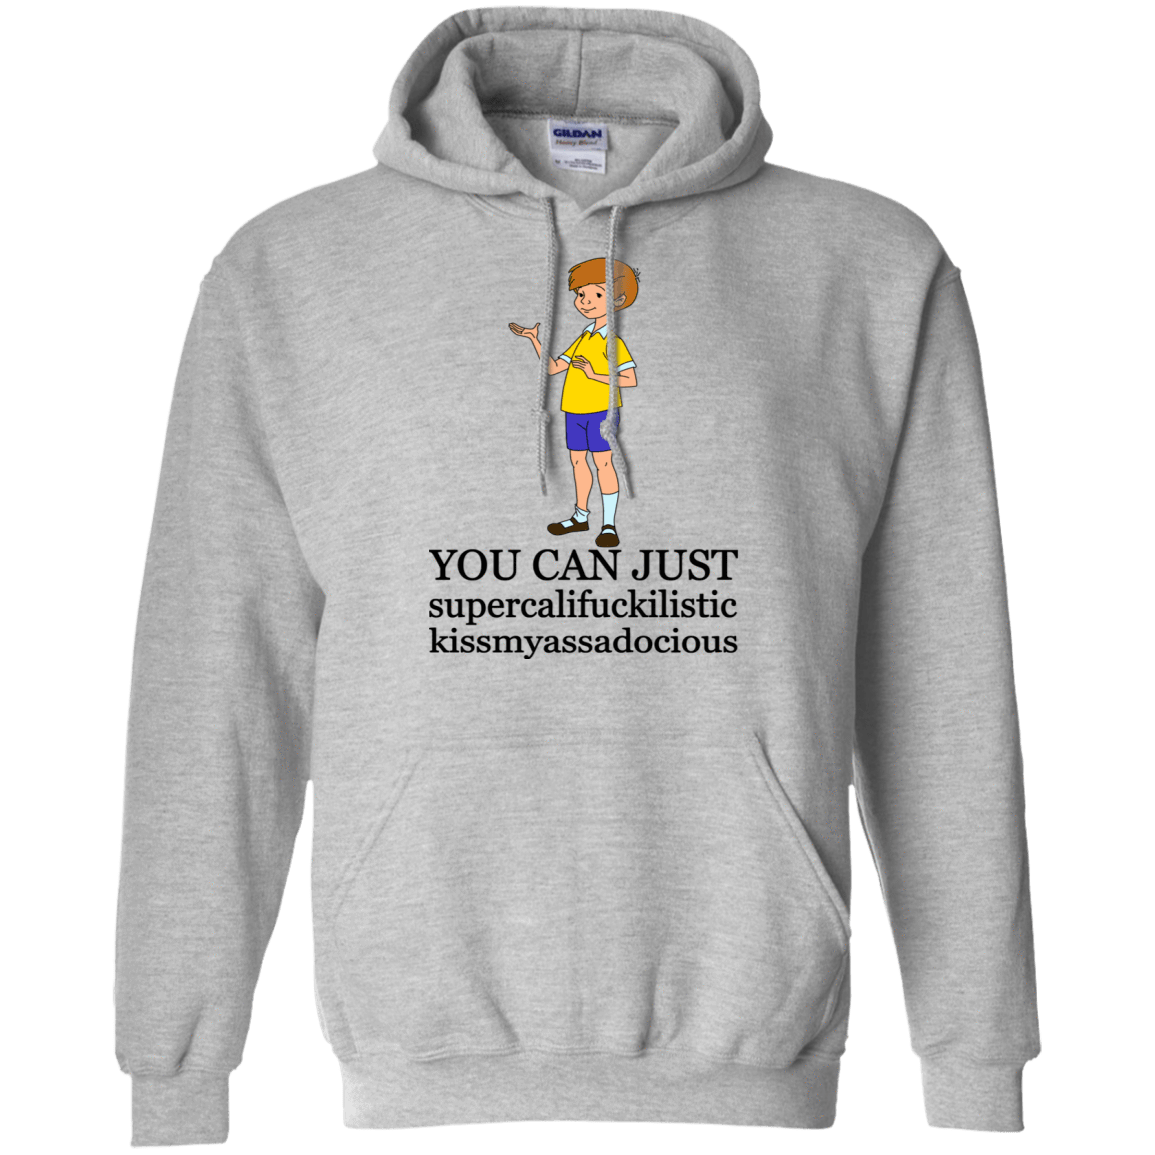 Christopher Robin: You Can't Just Supercailifuckilistic Kissmyassadocious T-Shirts, Hoodie, Tank 541-4741-77772494-23111 - Tee Ript